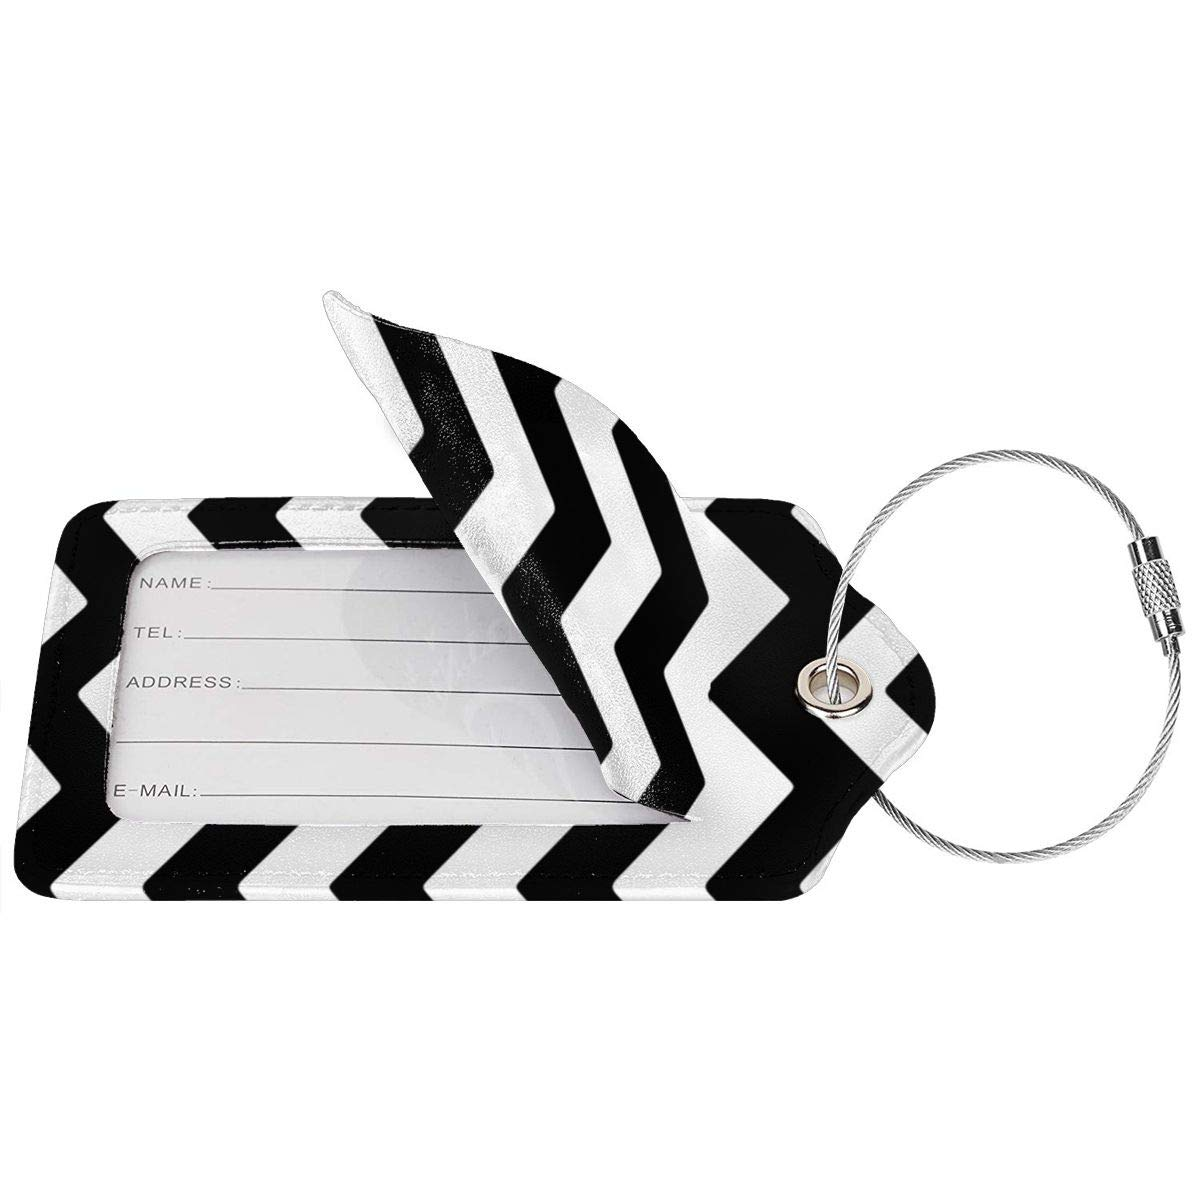 GoldK Black White Stripes Leather Luggage Tags Baggage Bag Instrument Tag Travel Labels Accessories with Privacy Cover